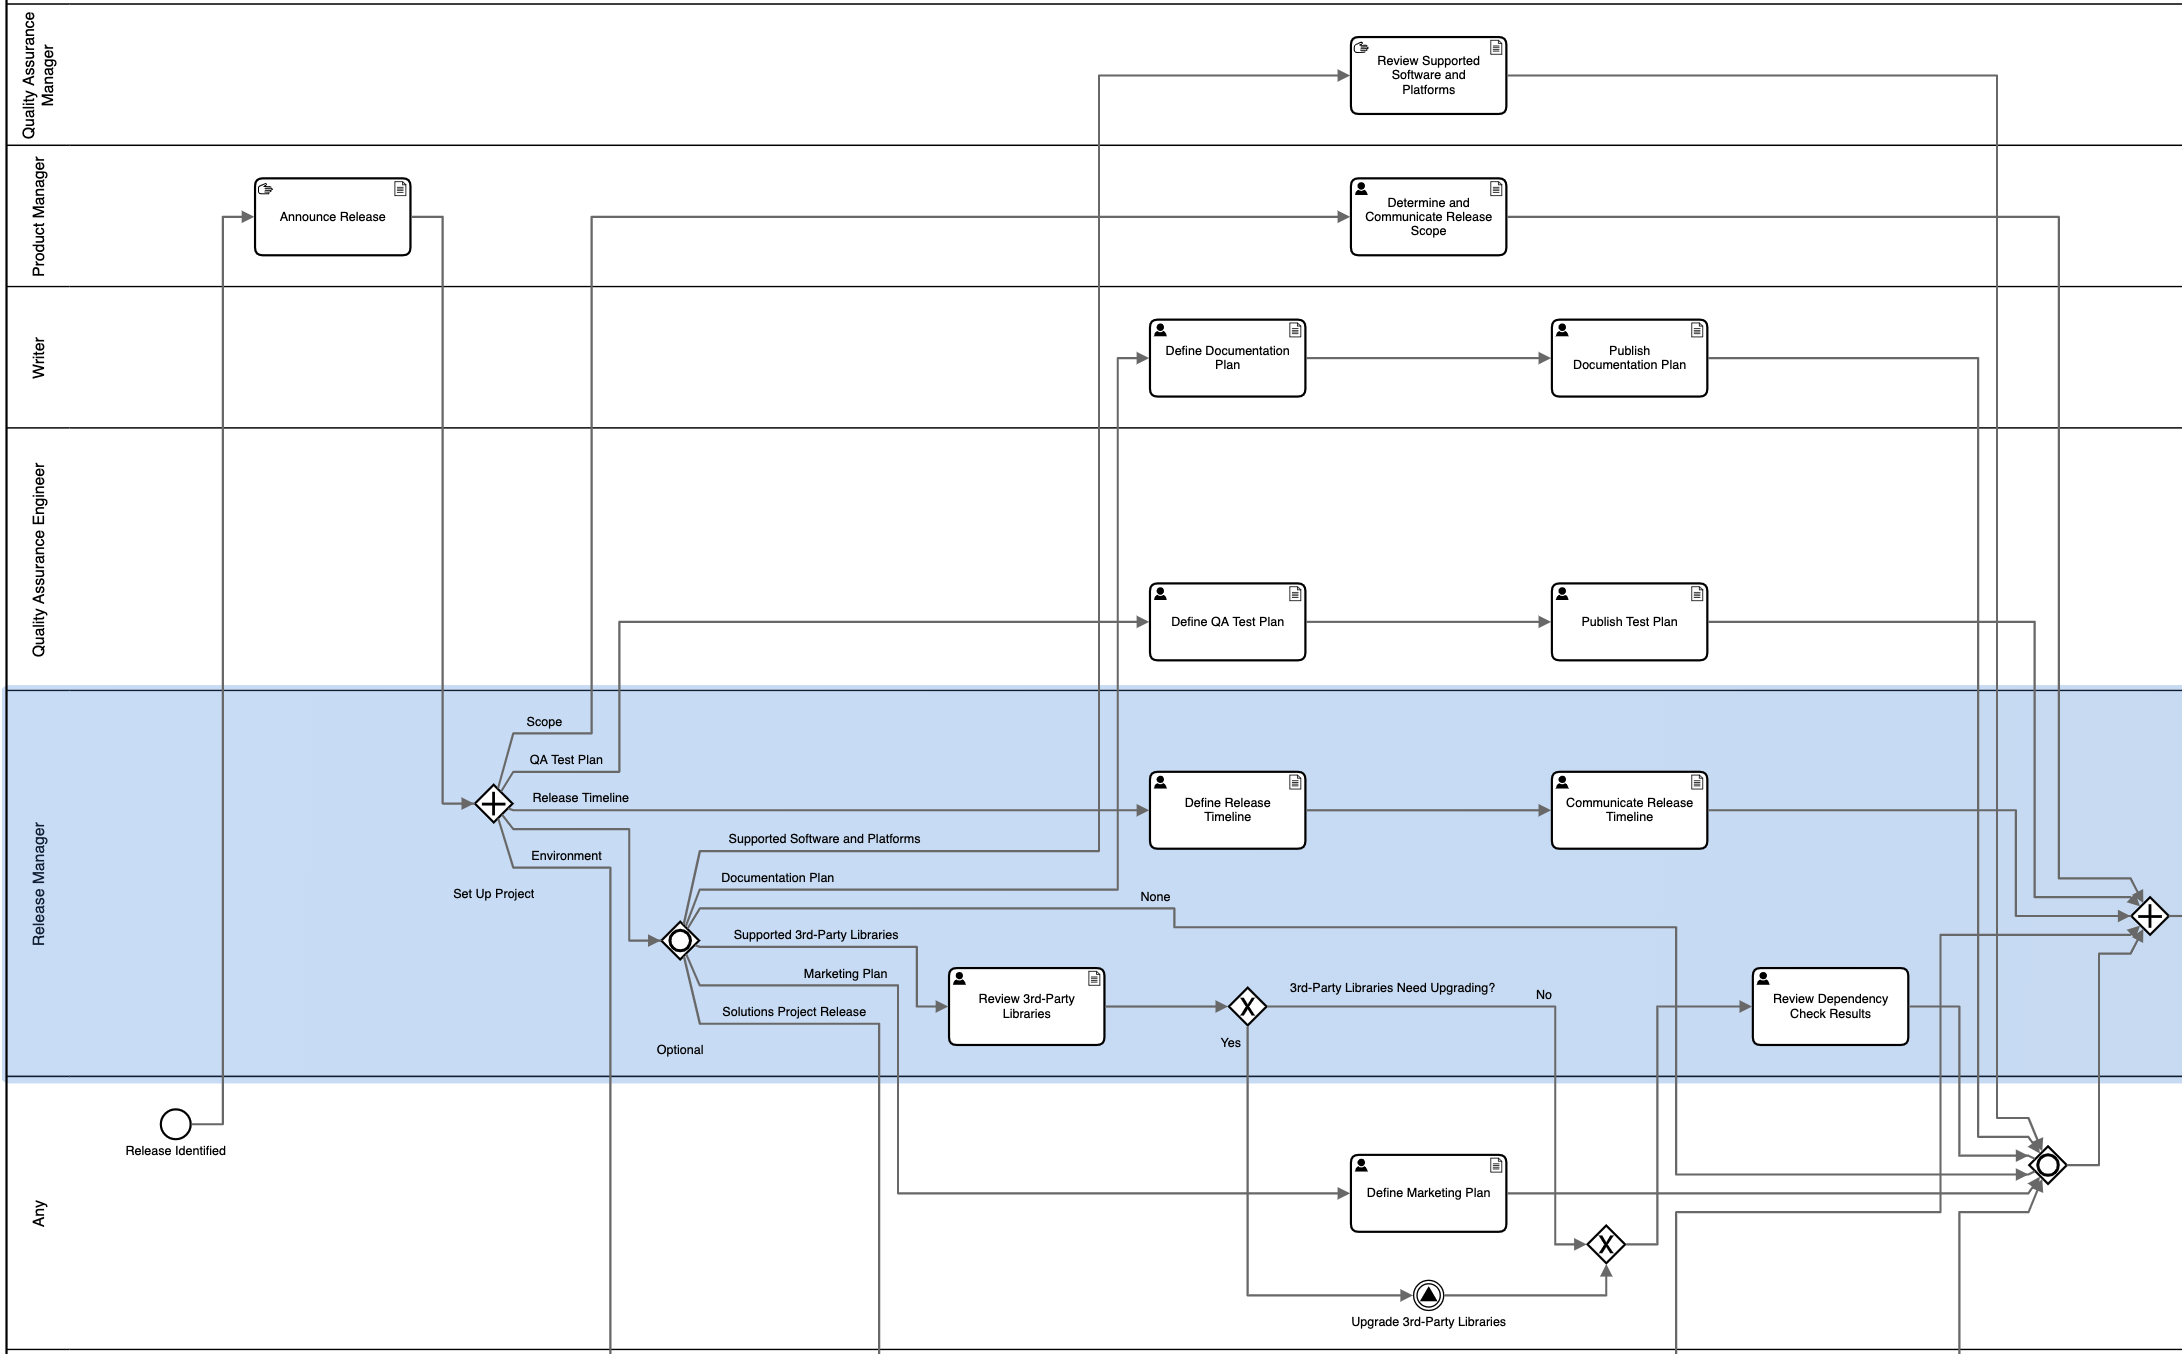 Automatically apply swimlanes to processes in the Business Process Modeling module